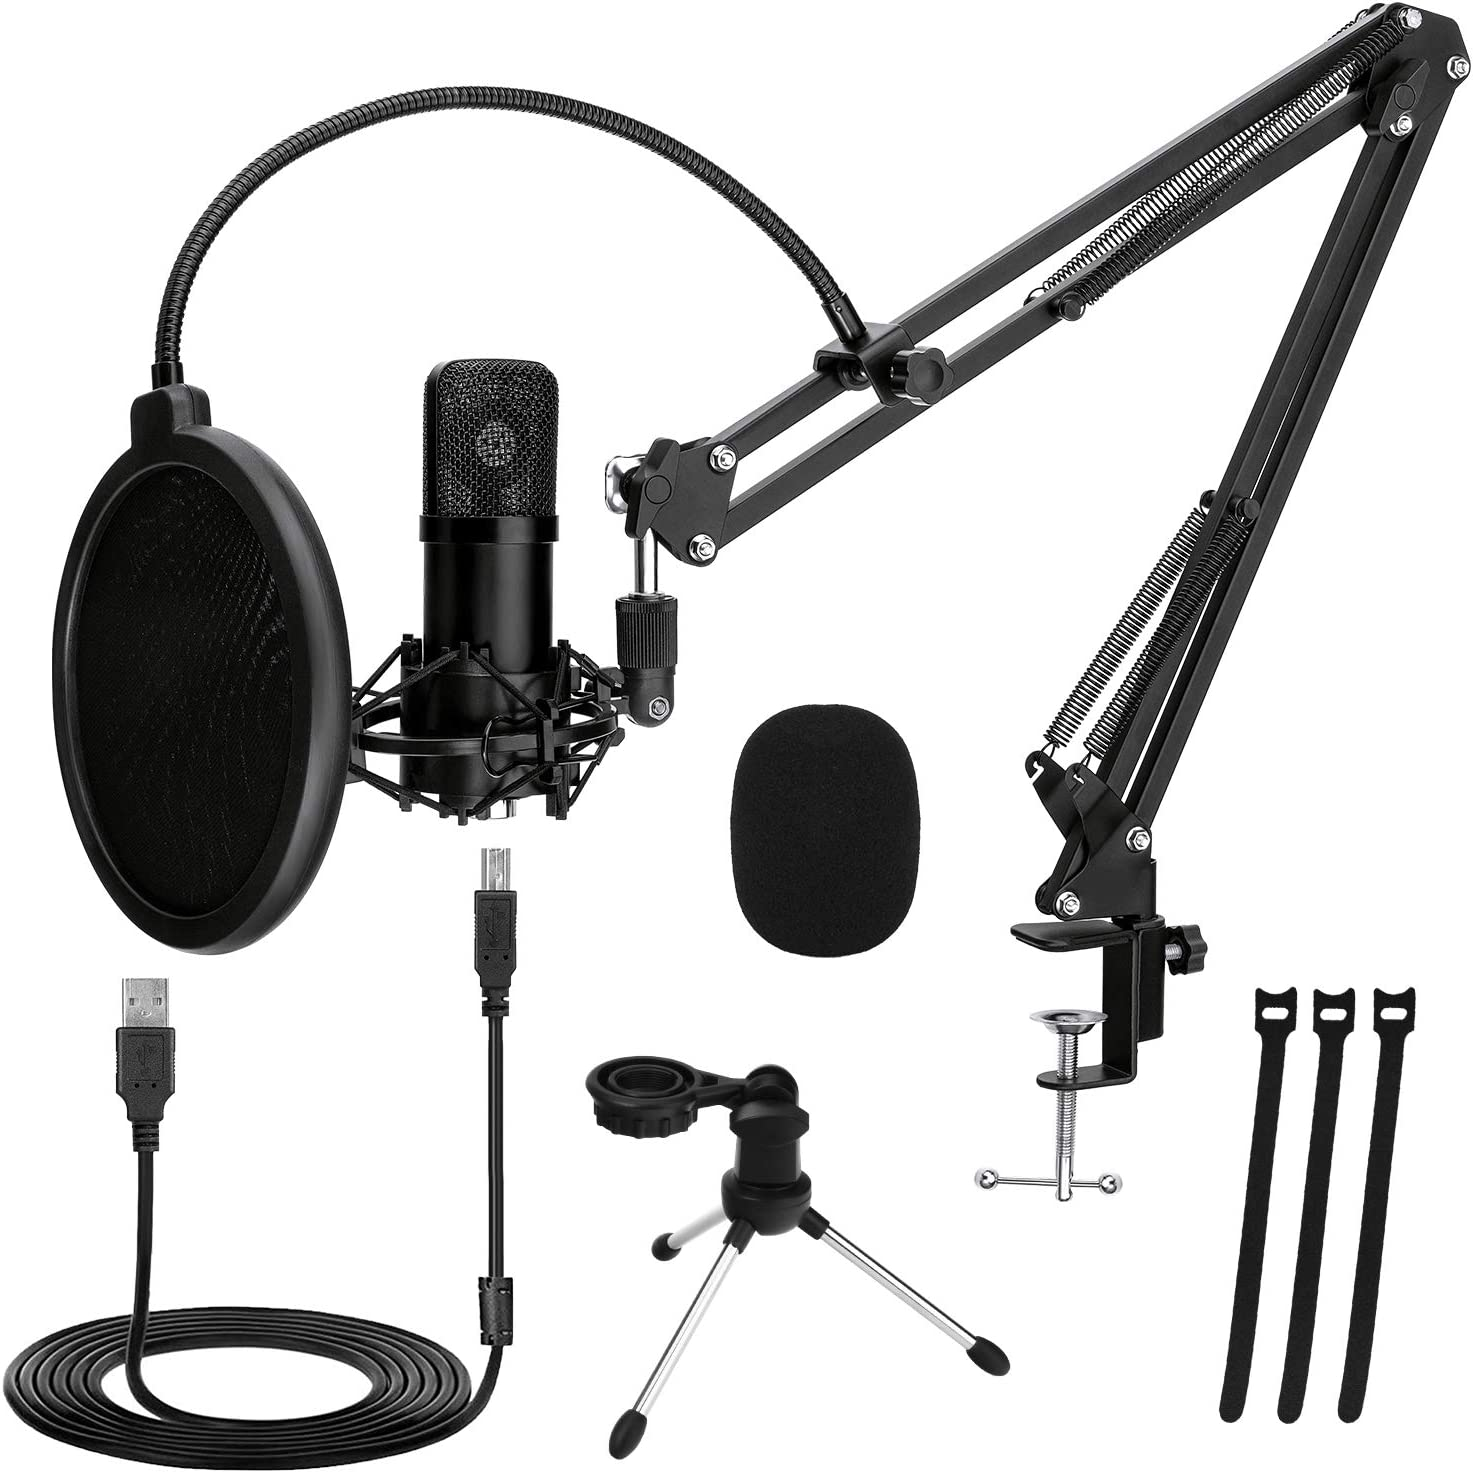 TonyKey Podcast Microphone PC with 2 an Plug Max 40% OFF Max 62% OFF Stands